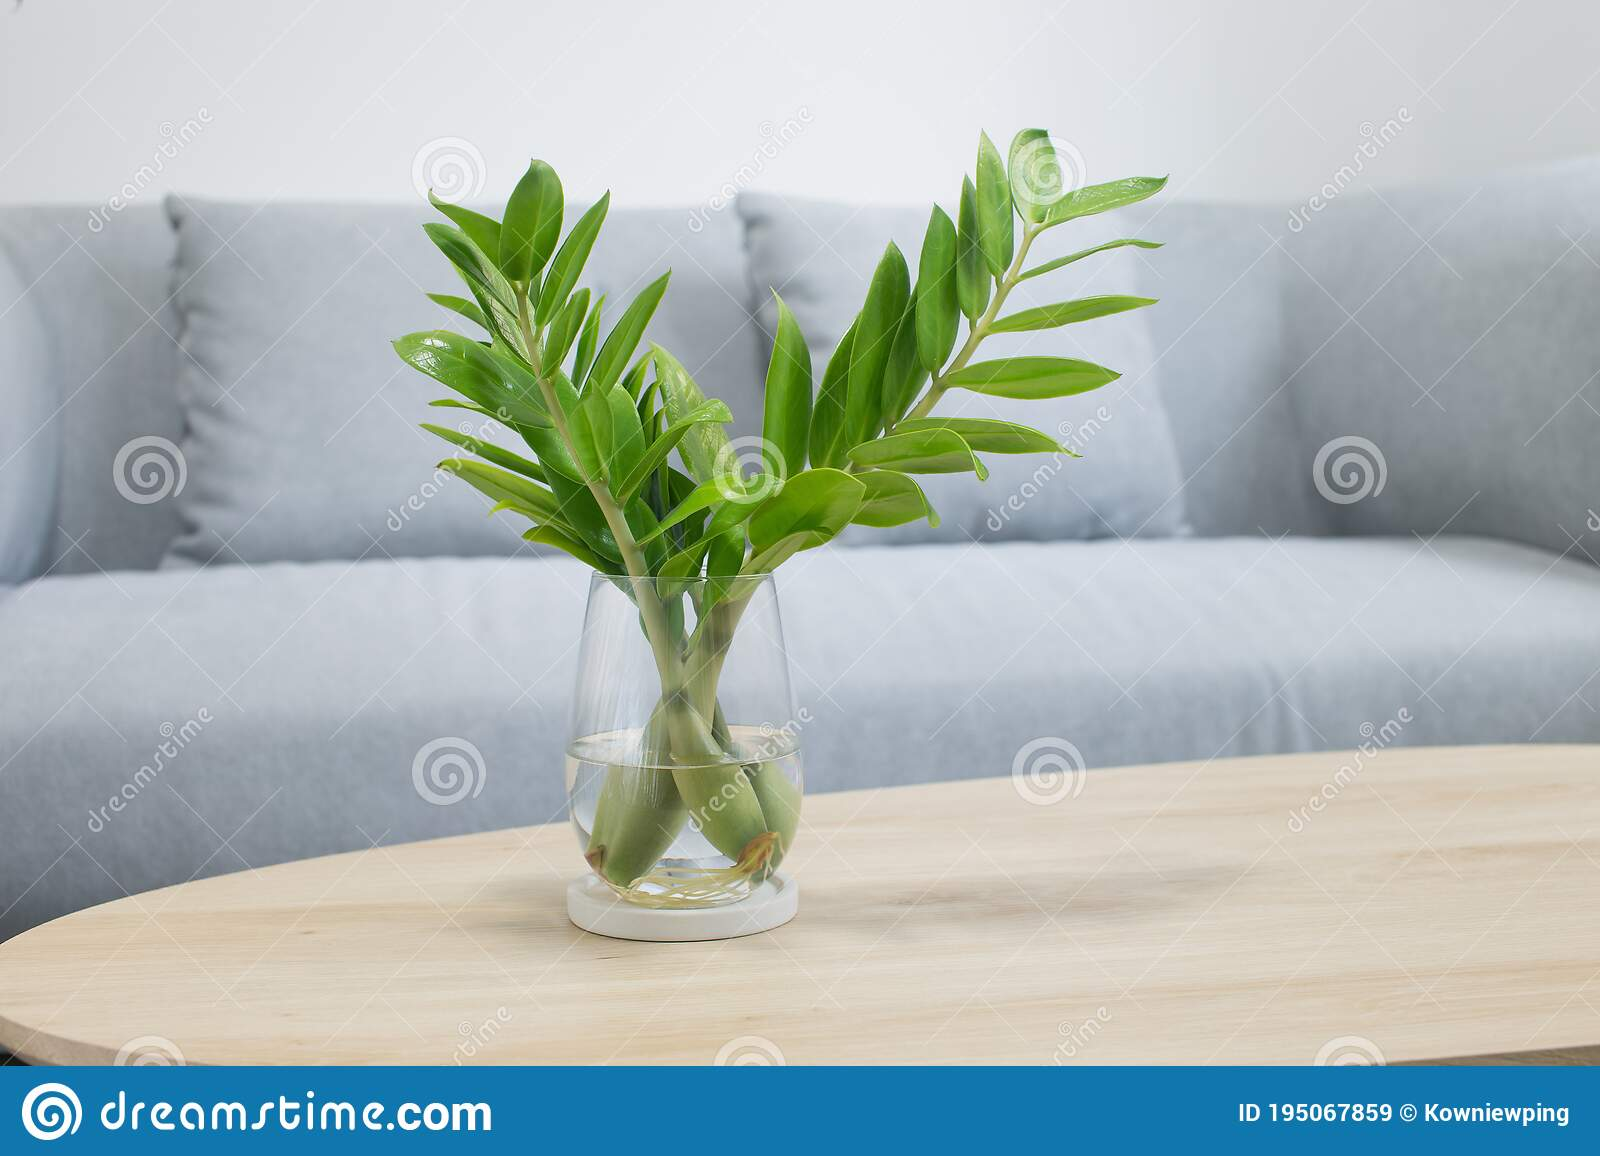 Zz Plant Photos Free Royalty Free Stock Photos From Dreamstime